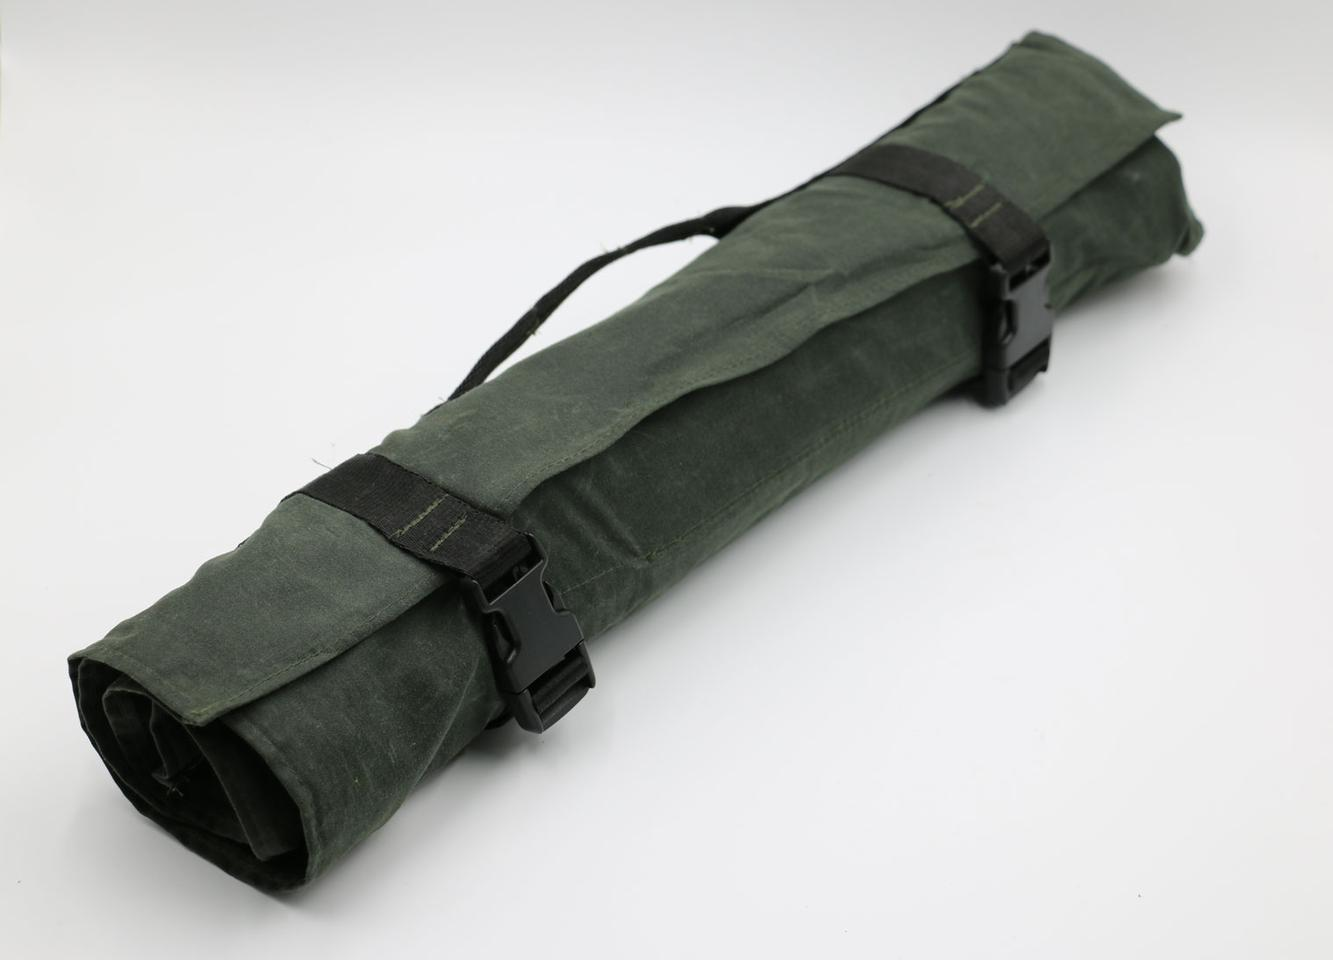 The included roll packs everything into easy carry/store form